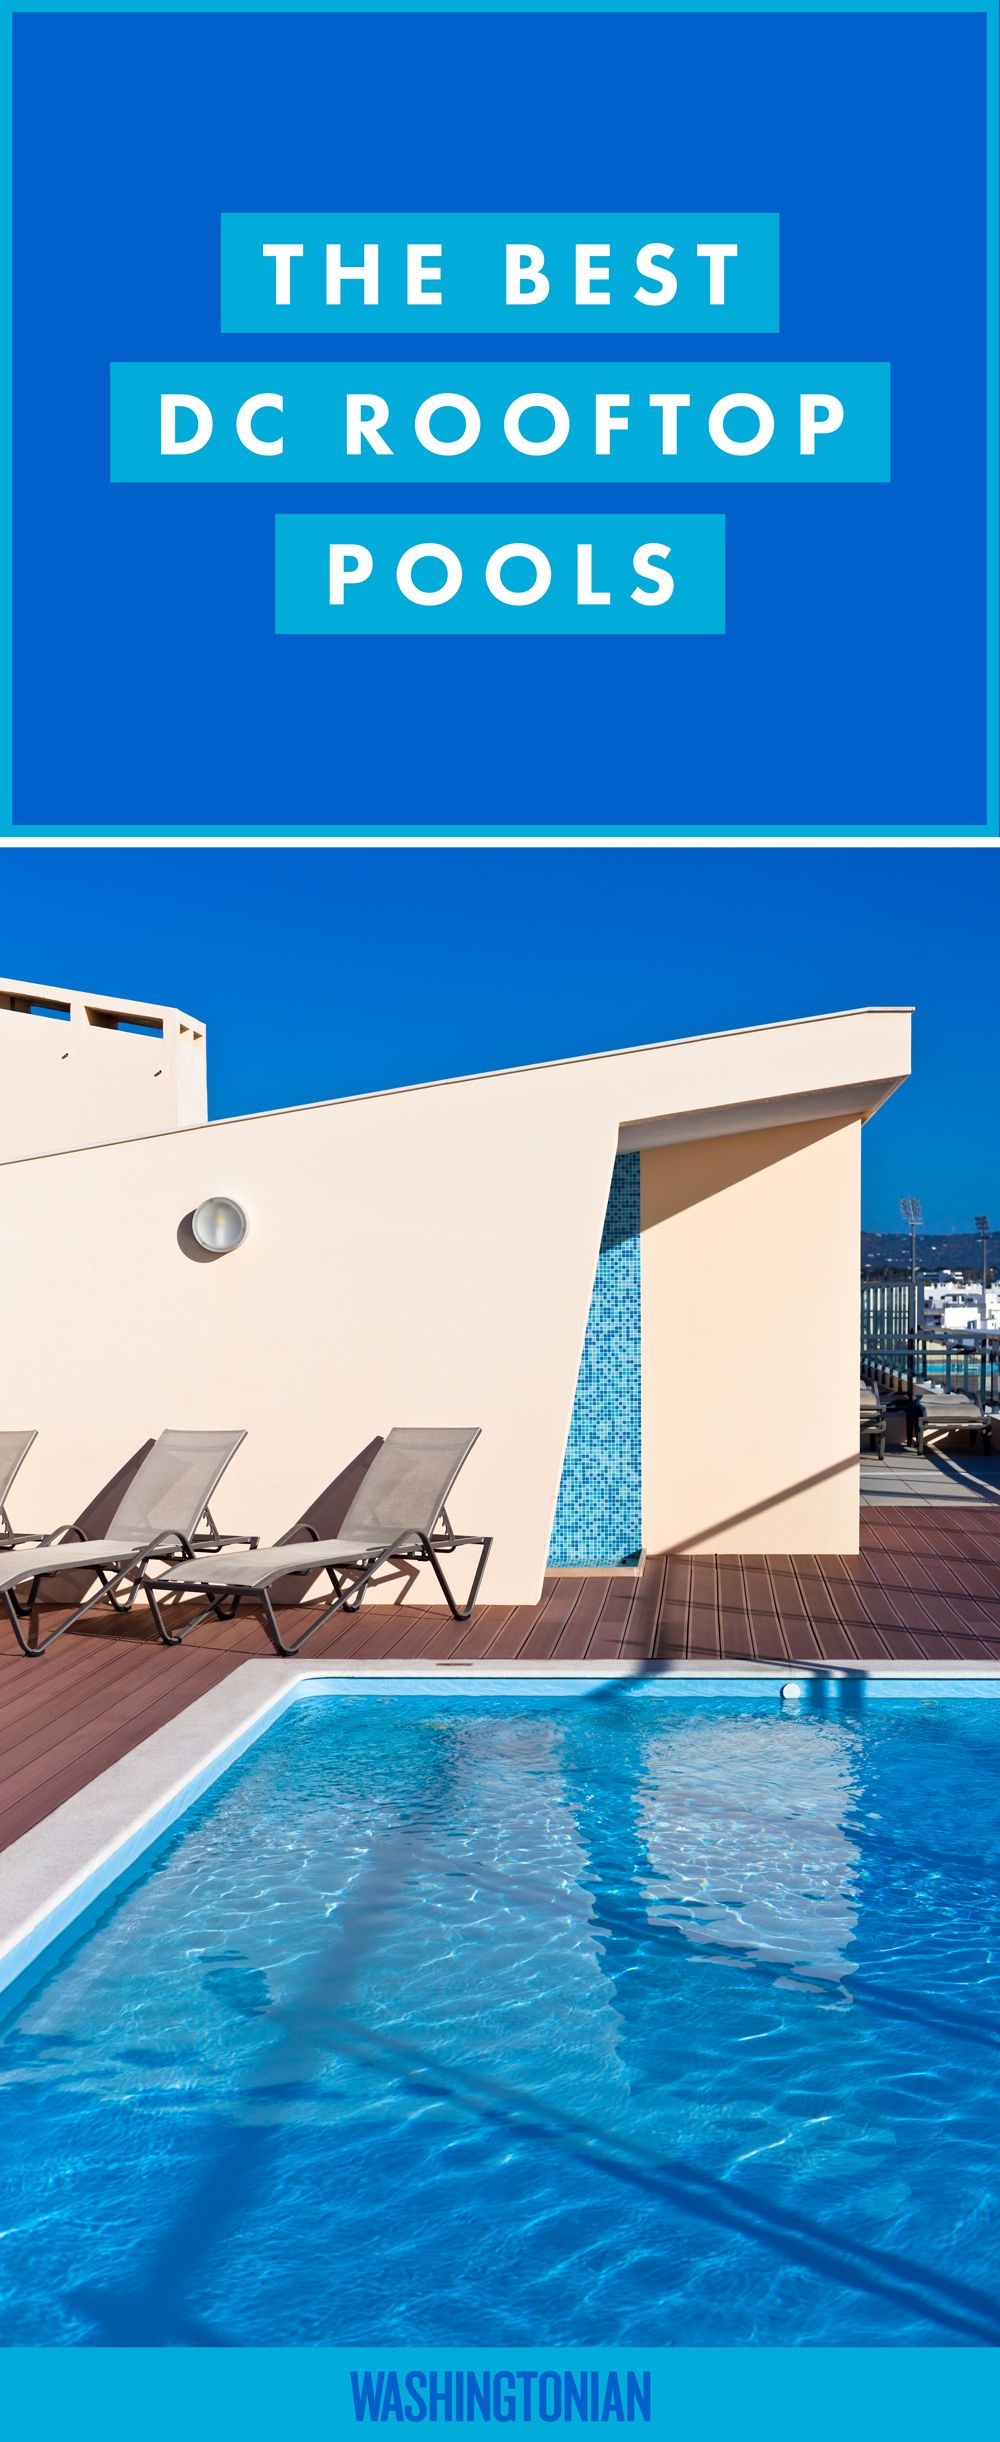 Hotel Pools Open For Swimming And Partying D C Life Hotel Pool